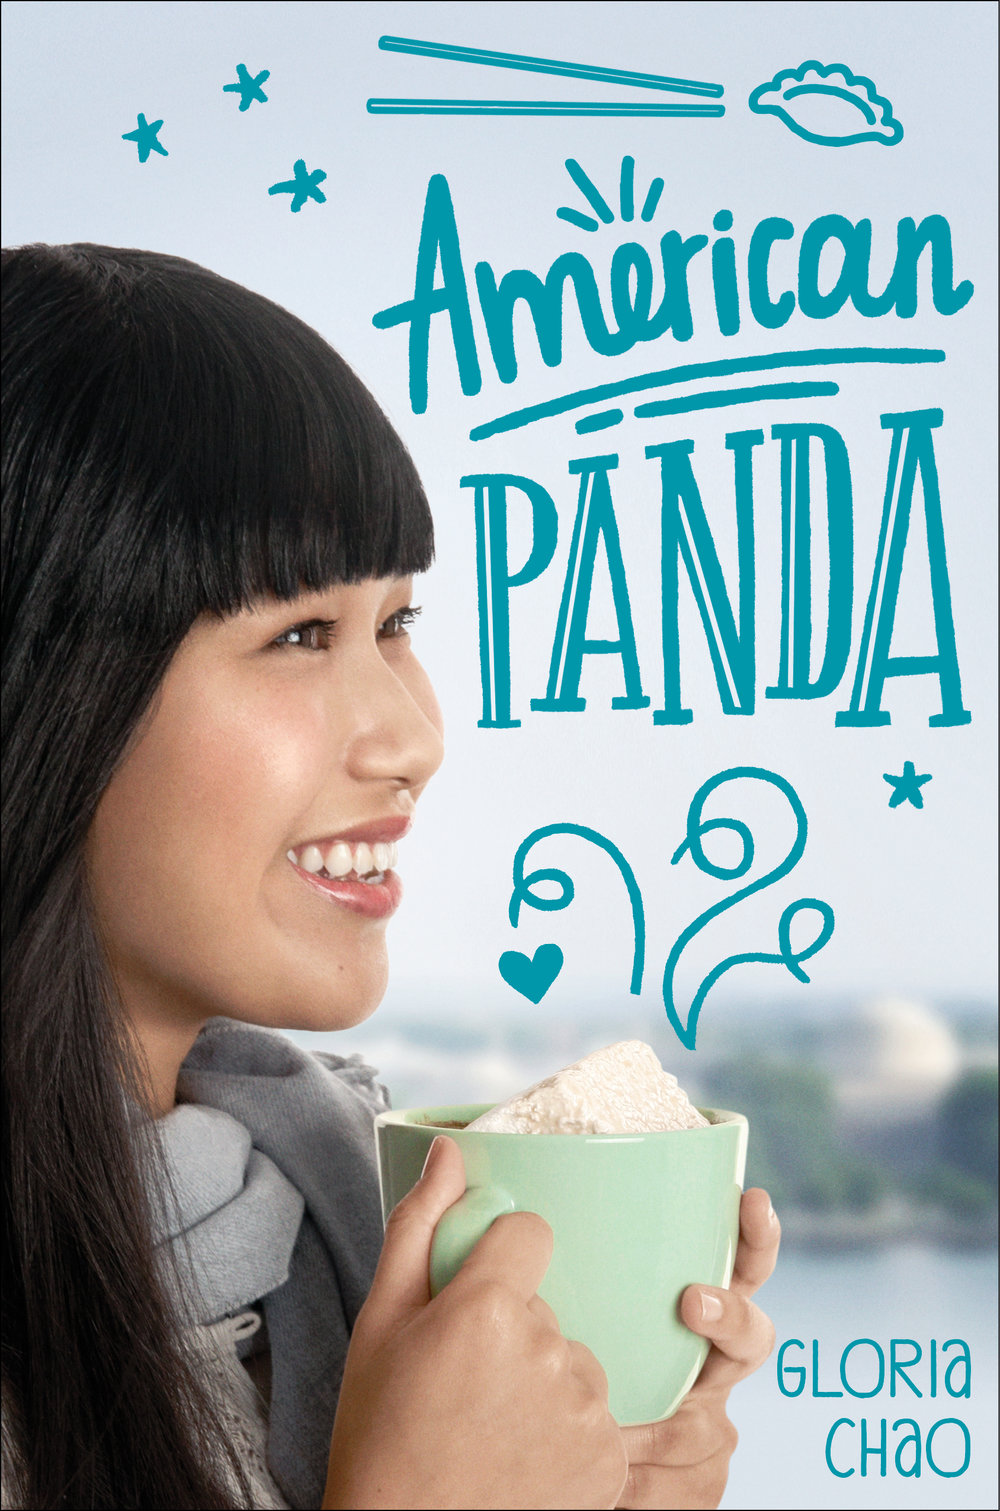 Happy book birthday to AMERICAN PANDA by Gloria Chao! - An incisive, laugh-out-loud contemporary debut about a Taiwanese-American teen whose parents want her to be a doctor and marry a Taiwanese Ivy Leaguer despite her squeamishness with germs and crush on a Japanese classmate.At seventeen, Mei should be in high school, but skipping fourth grade was part of her parents' master plan. Now a freshman at MIT, she is on track to fulfill the rest of this predetermined future: become a doctor, marry a preapproved Taiwanese Ivy Leaguer, produce a litter of babies.With everything her parents have sacrificed to make her cushy life a reality, Mei can't bring herself to tell them the truth--that she (1) hates germs, (2) falls asleep in biology lectures, and (3) has a crush on her classmate Darren Takahashi, who is decidedly not Taiwanese.But when Mei reconnects with her brother, Xing, who is estranged from the family for dating the wrong woman, Mei starts to wonder if all the secrets are truly worth it. Can she find a way to be herself, whoever that is, before her web of lies unravels?From debut author Gloria Chao comes a hilarious, heartfelt tale of how unlike the panda, life isn't always so black and white.